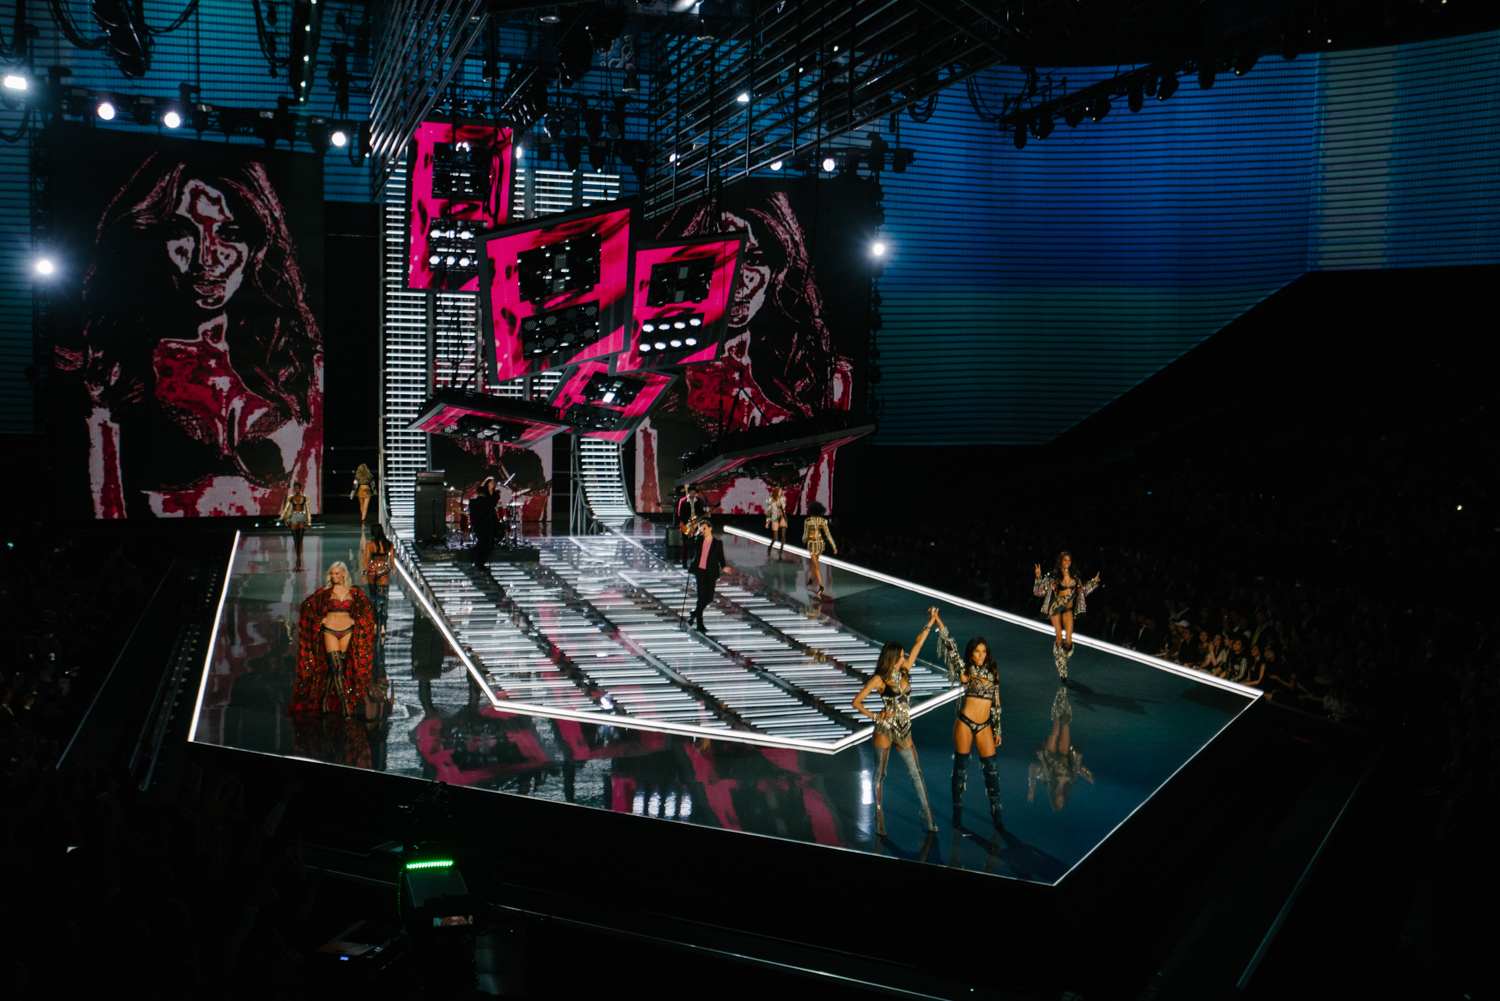 VICTORIA SECRET SHOW_FASHION EVENT_SHANGHAI-04218.jpg